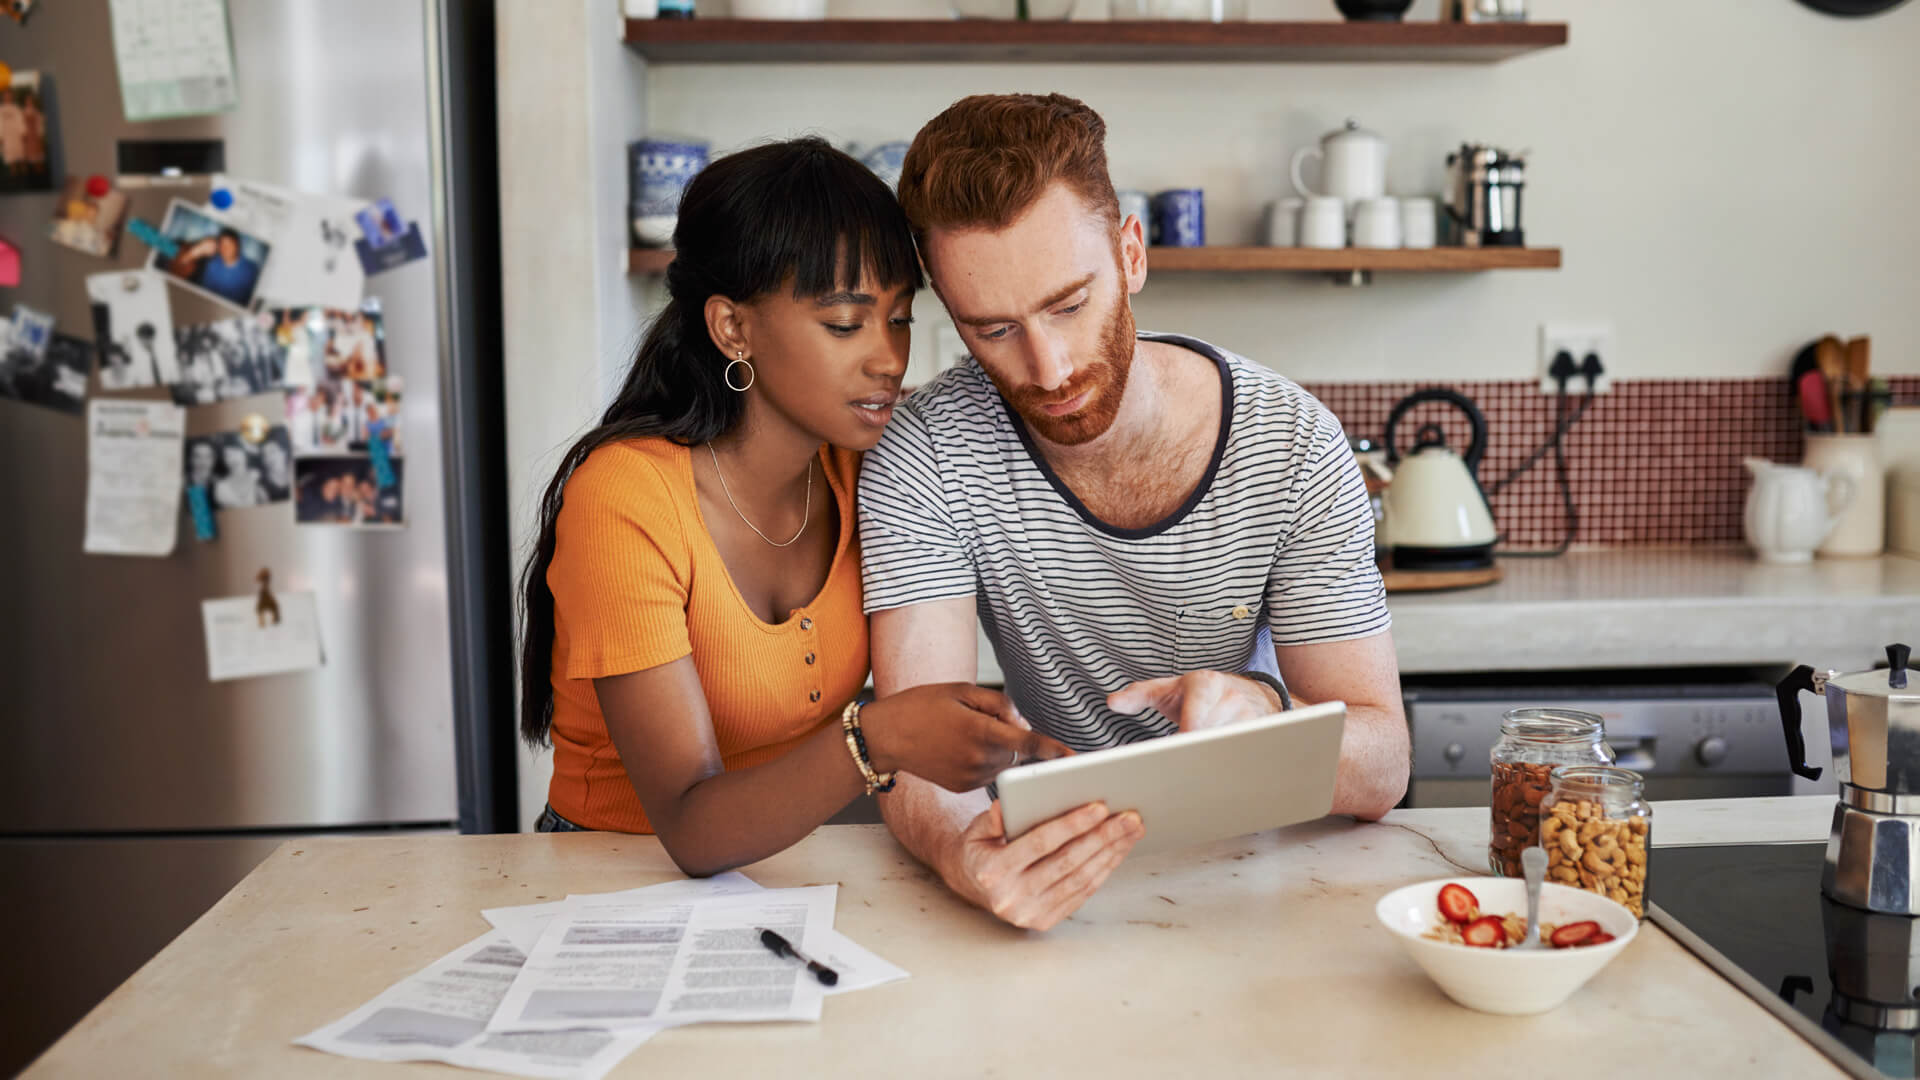 Shot of a young couple using a digital tablet at home.